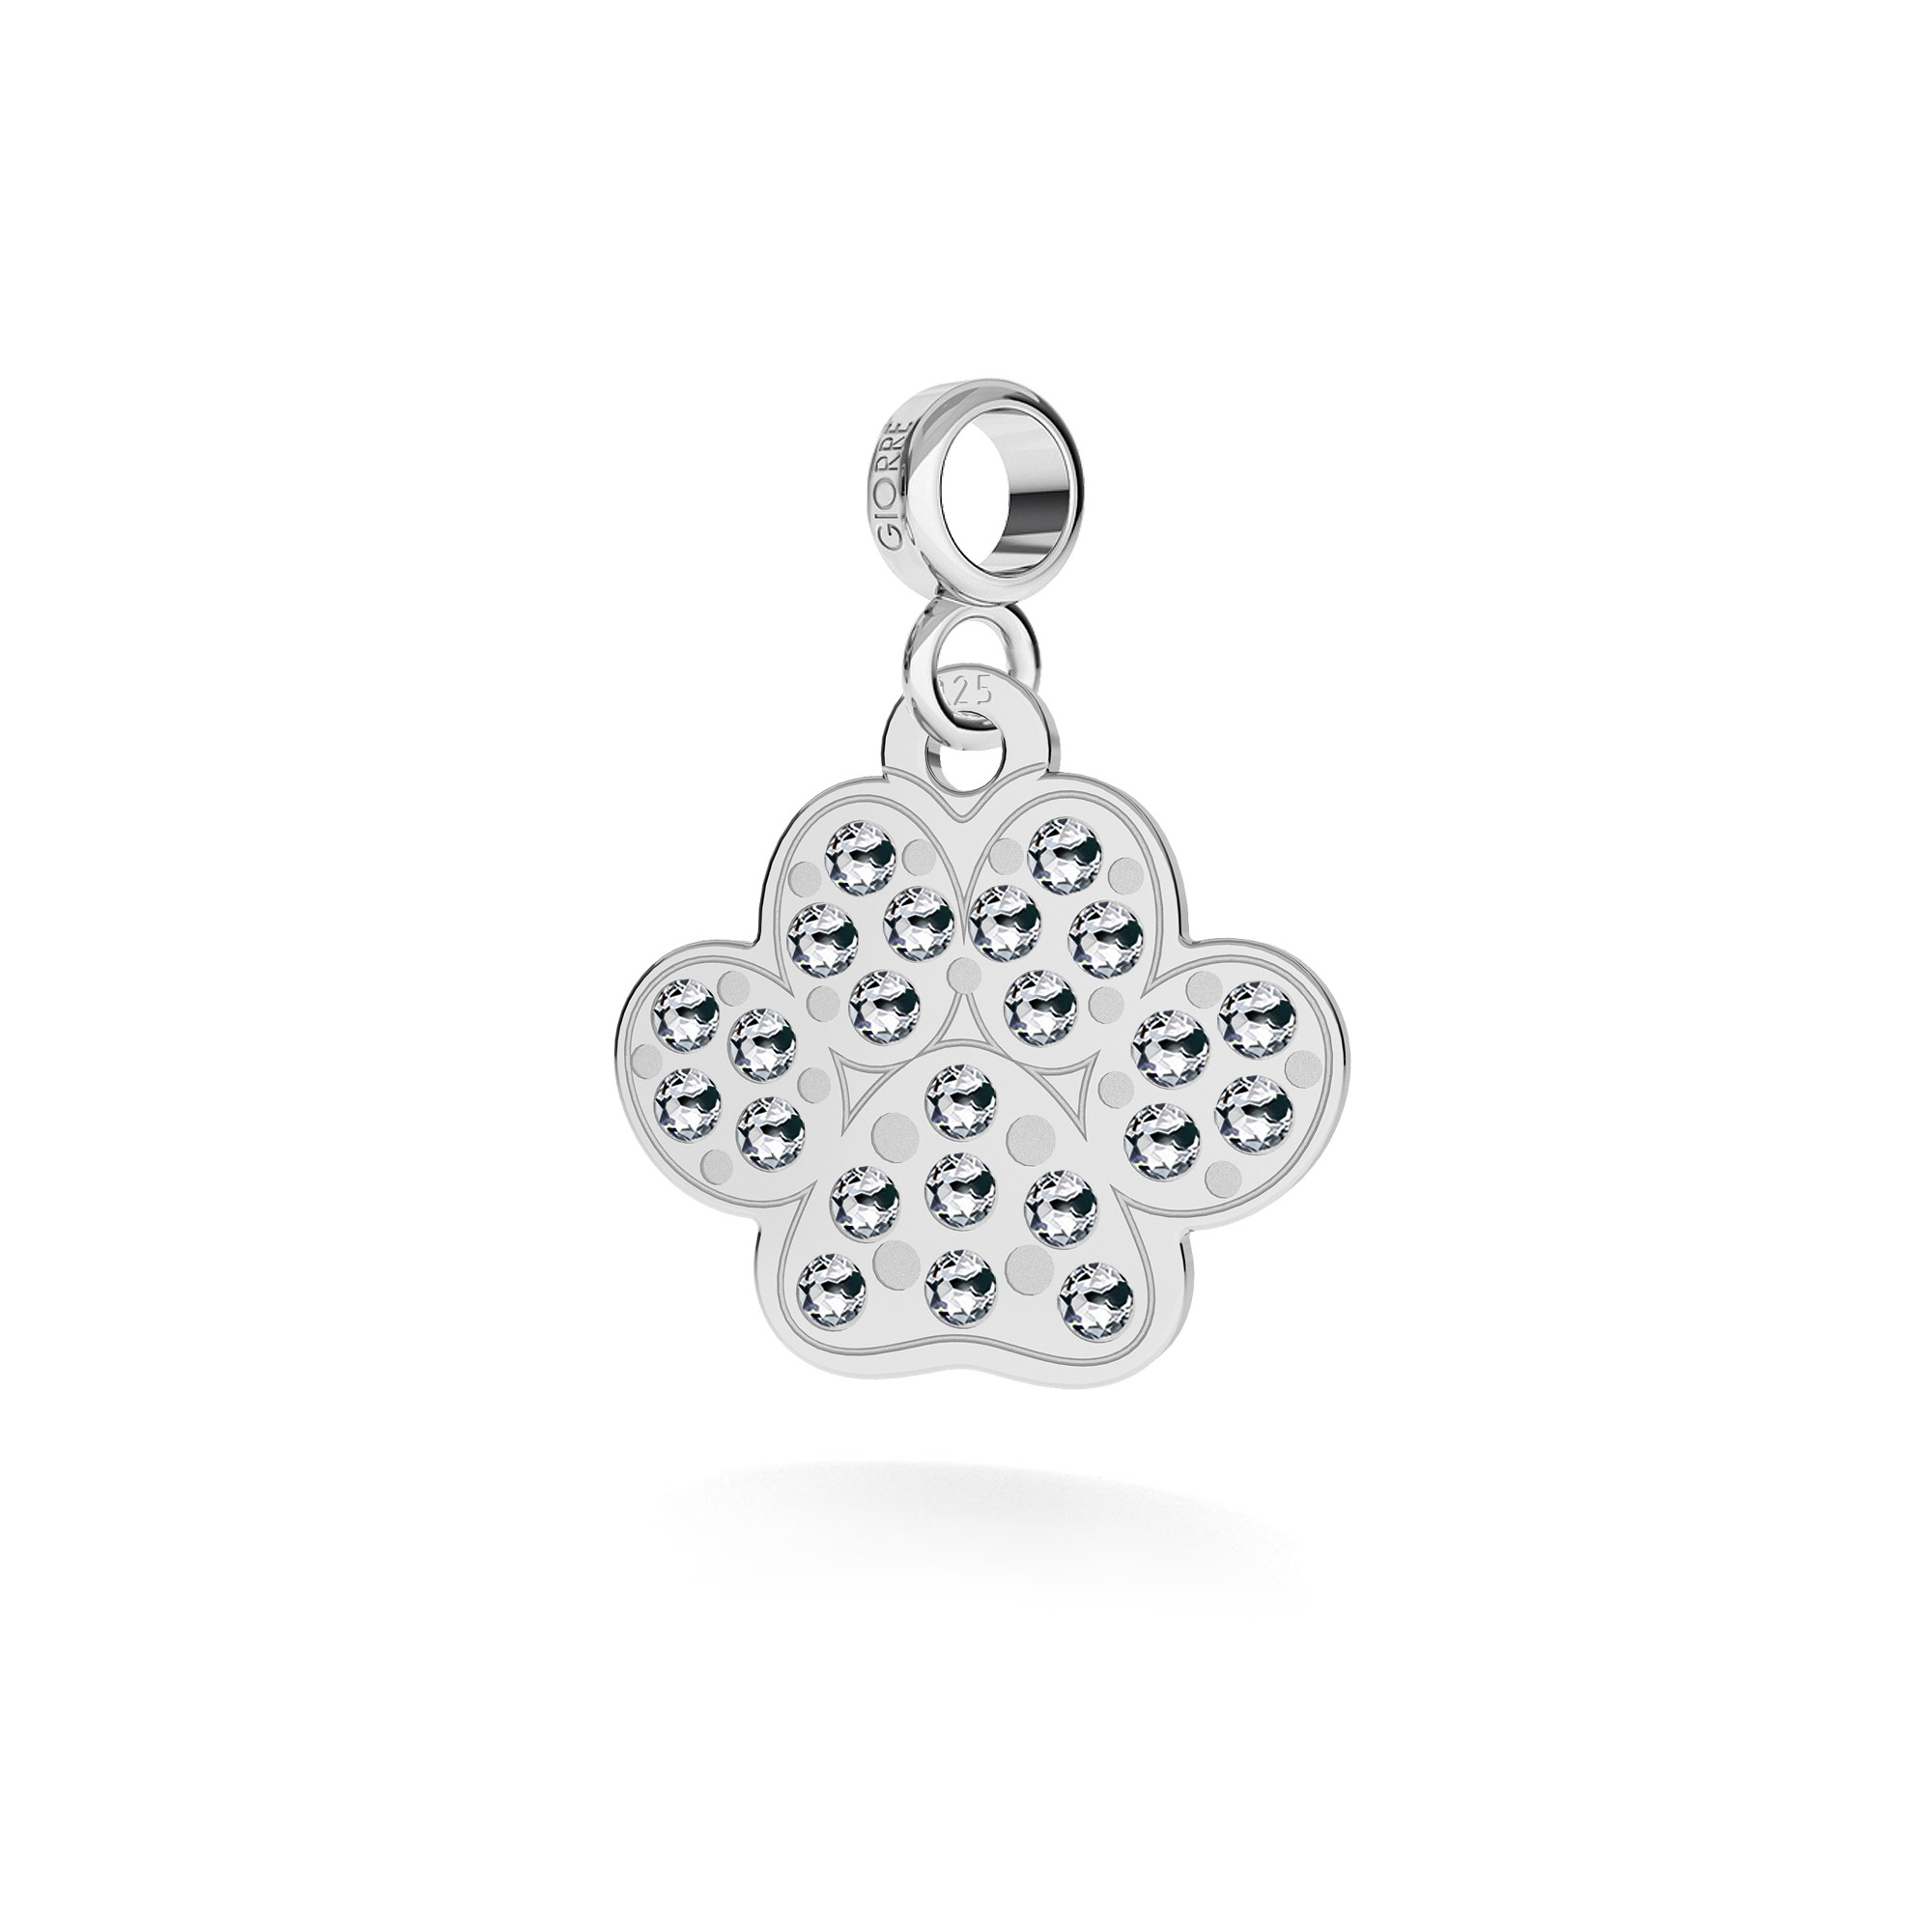 DOG PAW necklace with Swarovski crystals silver 925